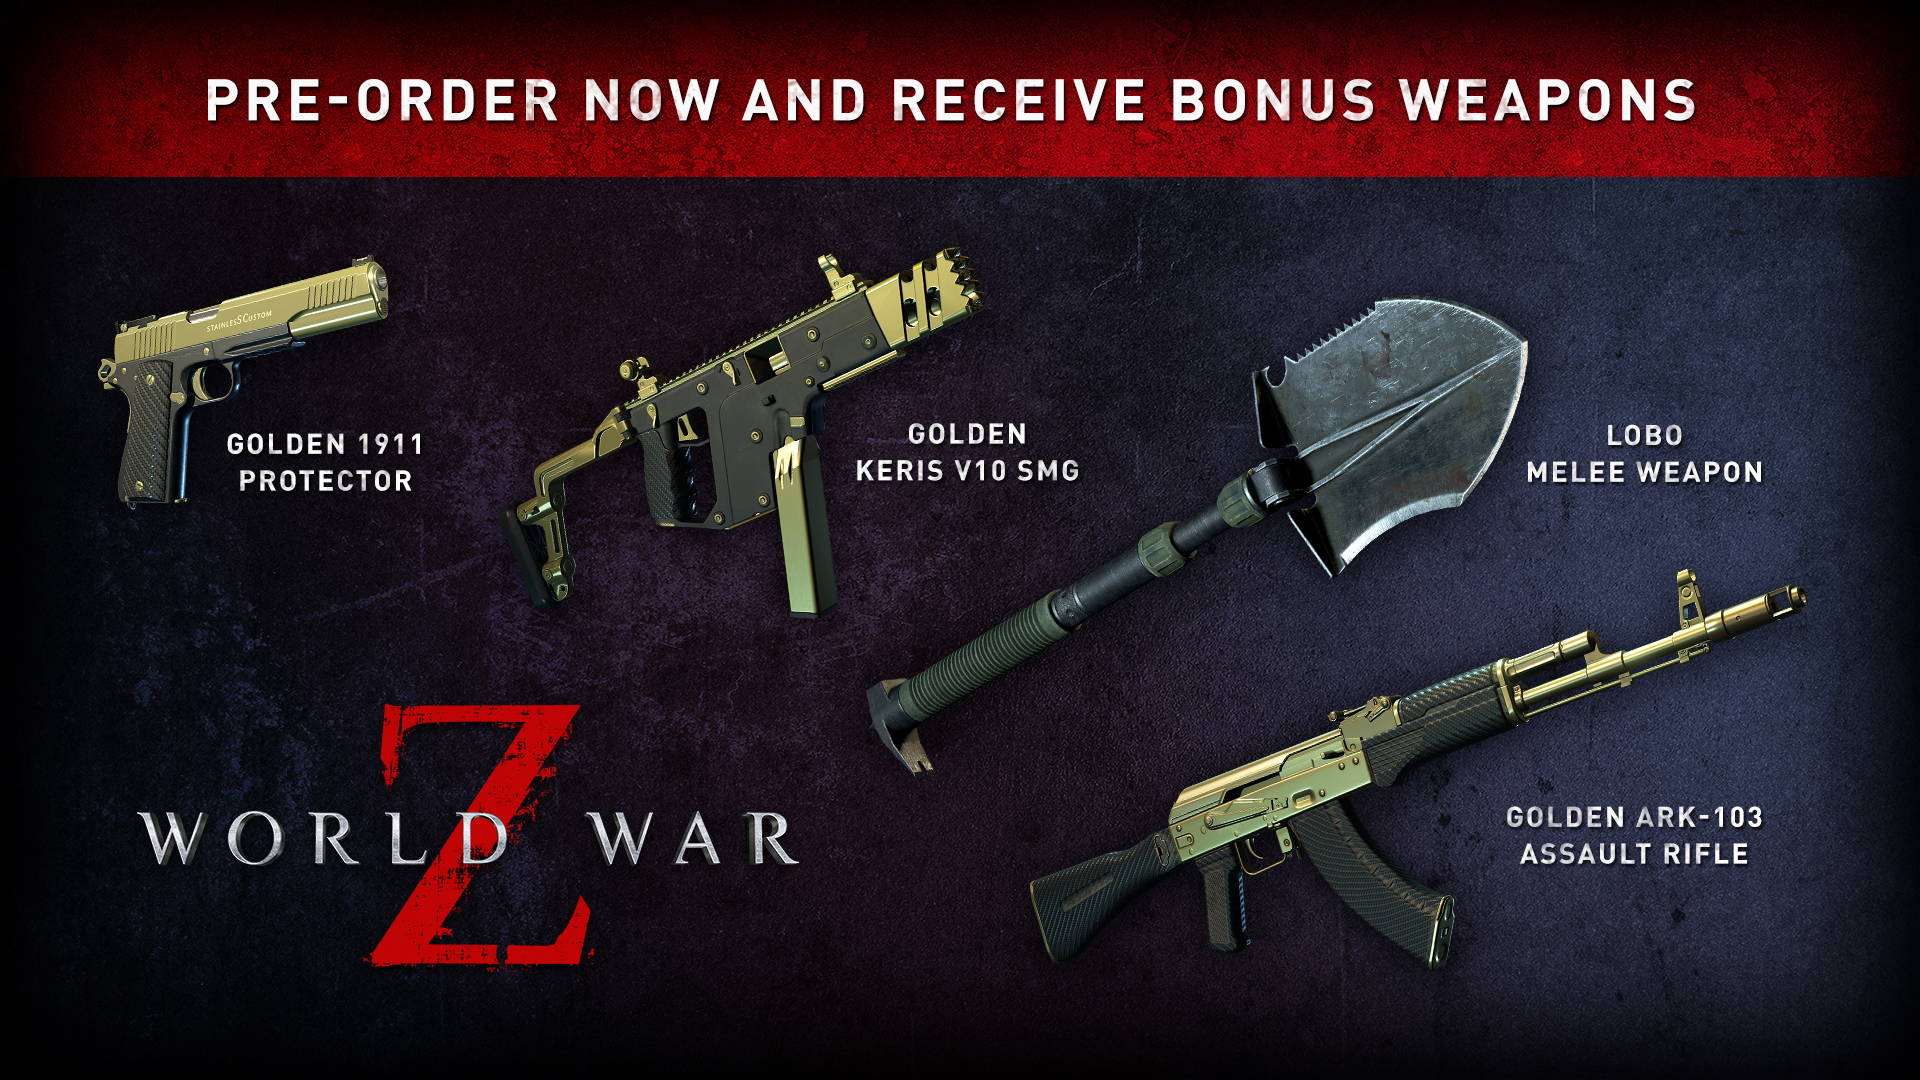 World War Z Pre Order Bonuses Include Iconic Lobo Weapon